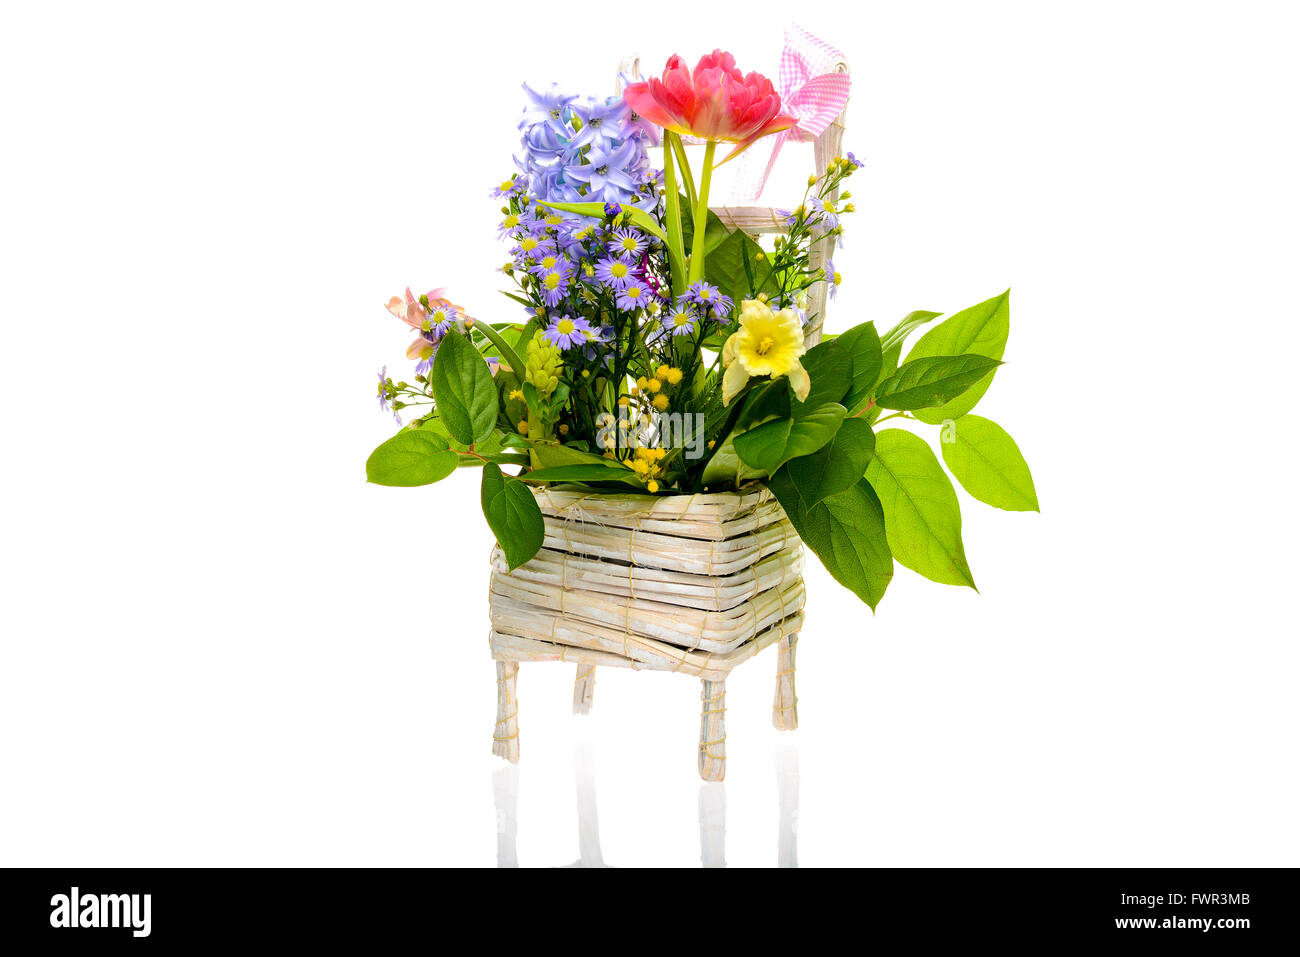 Different Type Of Wild Flowers On White Basket White Background